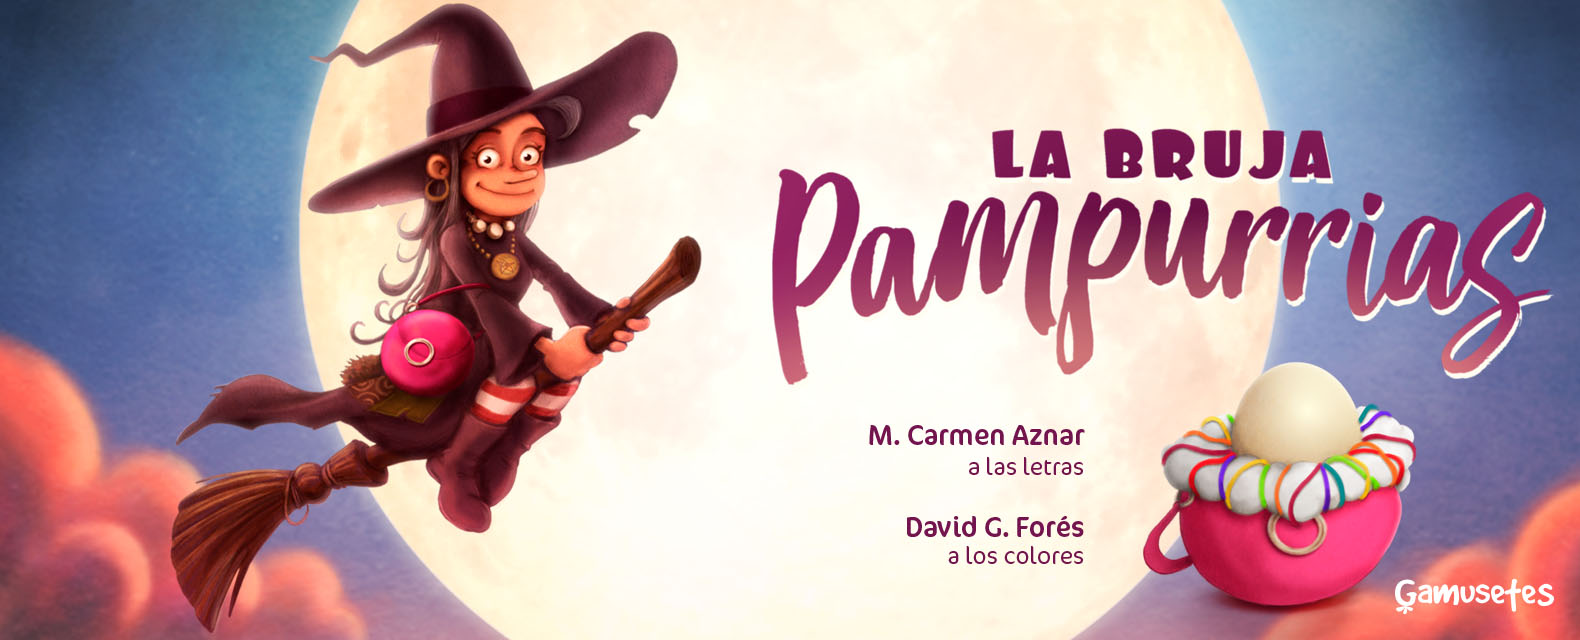 Pampurrias_banner_web